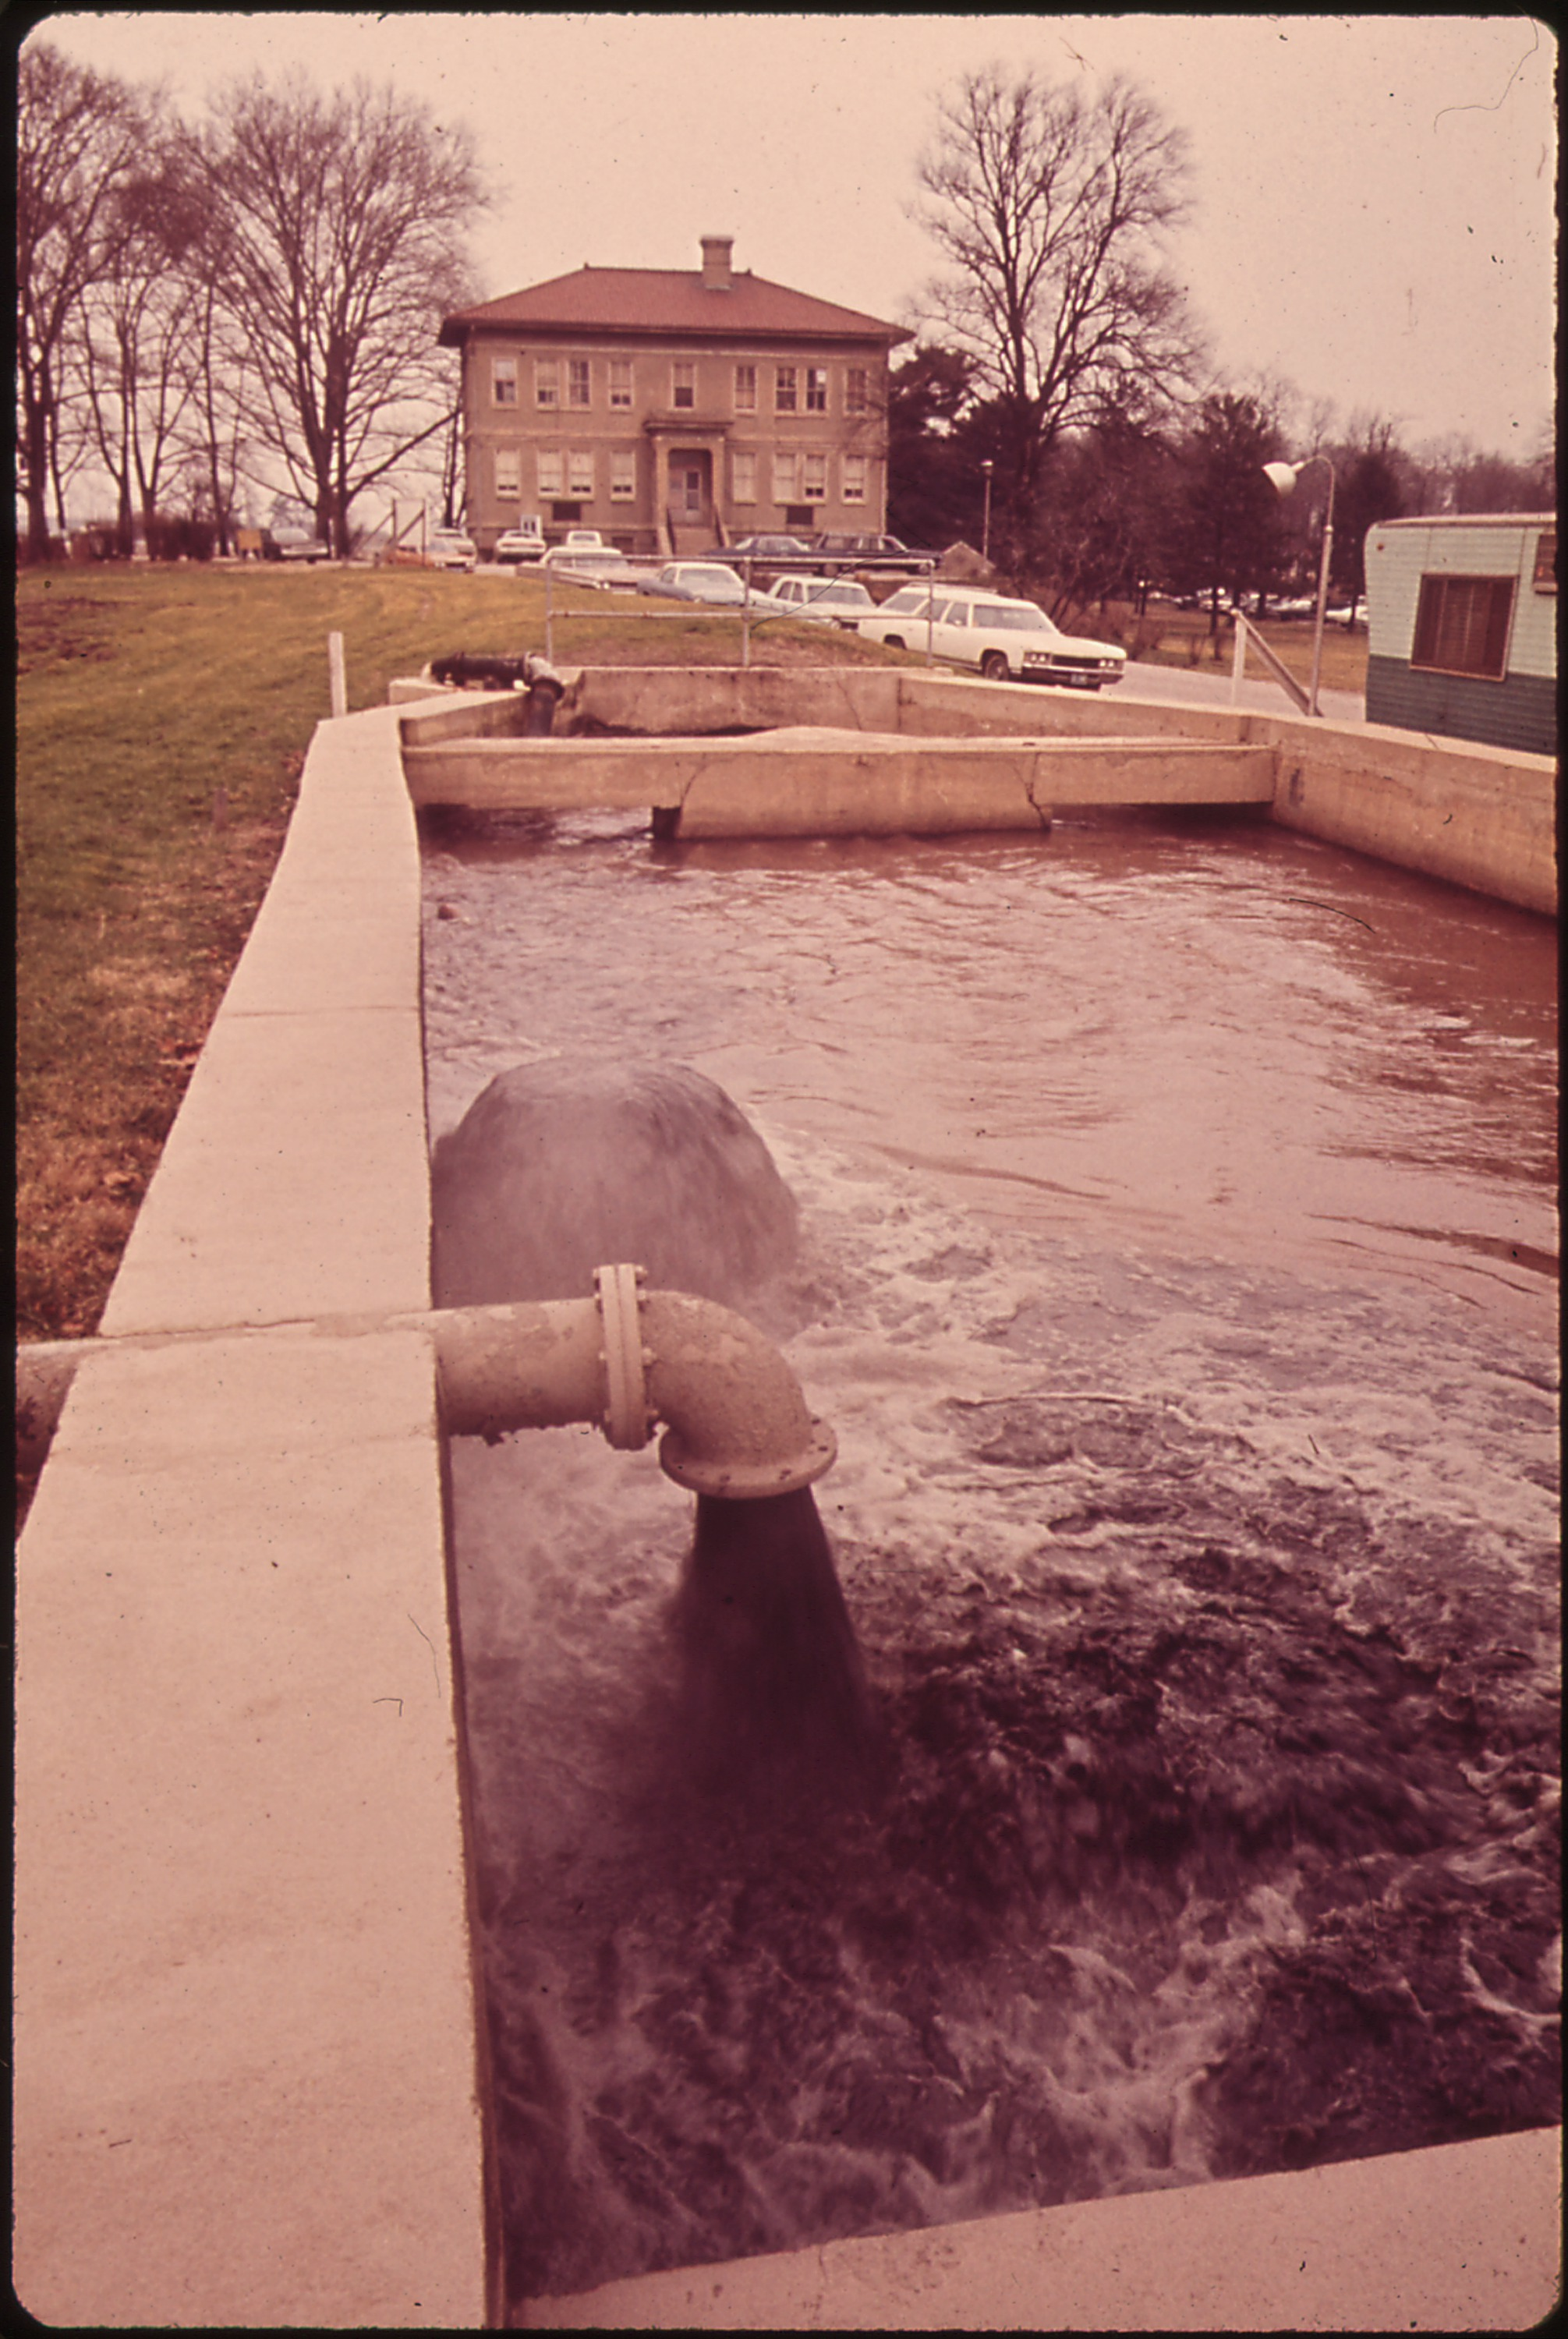 File:SEWAGE FLOWS INTO BACK RIVER SEWAGE TREATMENT PLANT, A PRIMARY TREATMENT FACILITY FOR